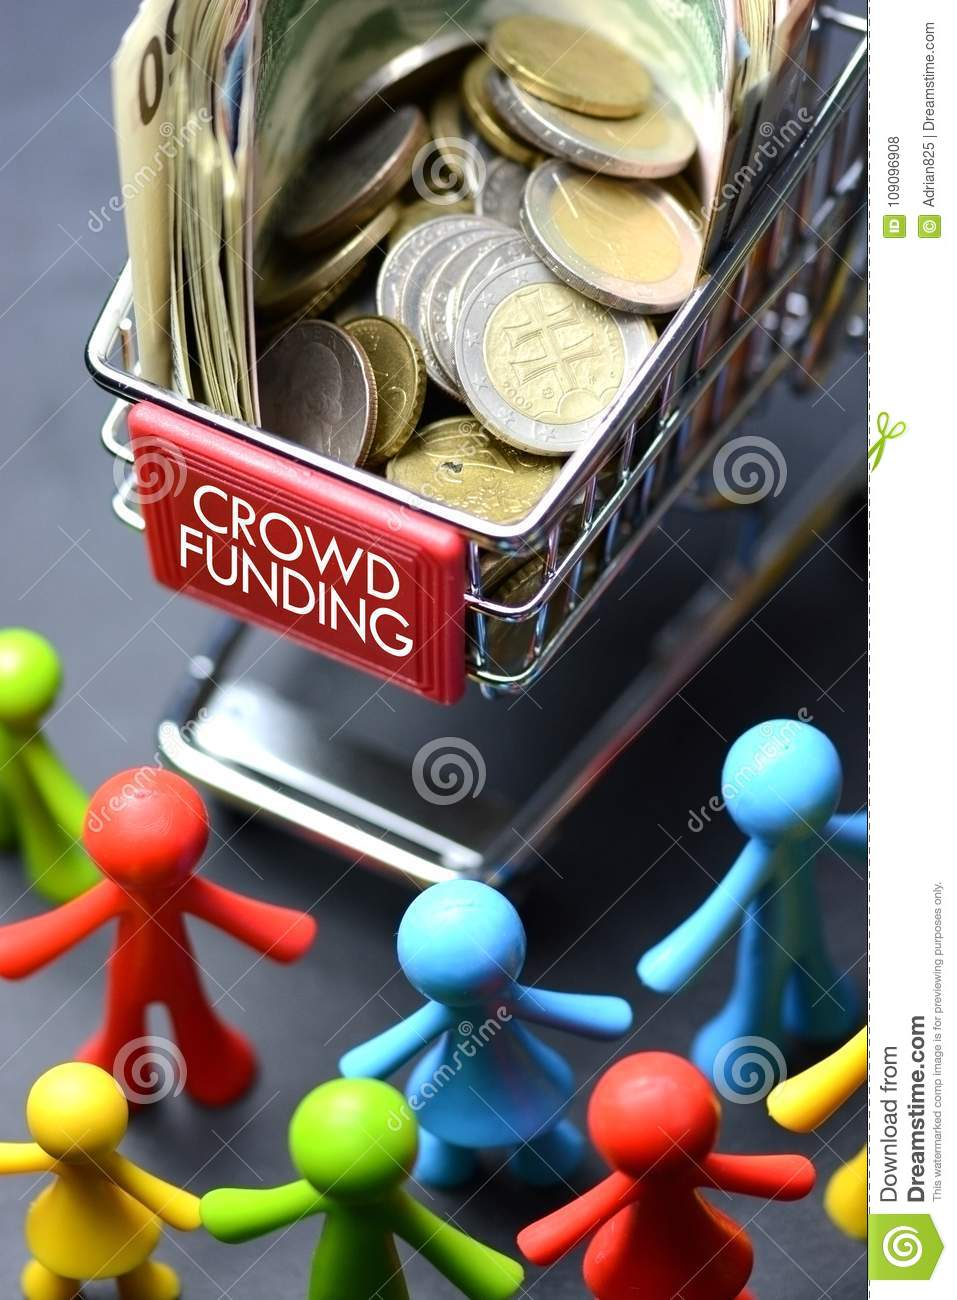 Crowdfunding concept with multicolored figurine and shopping trolley full of money on dark background